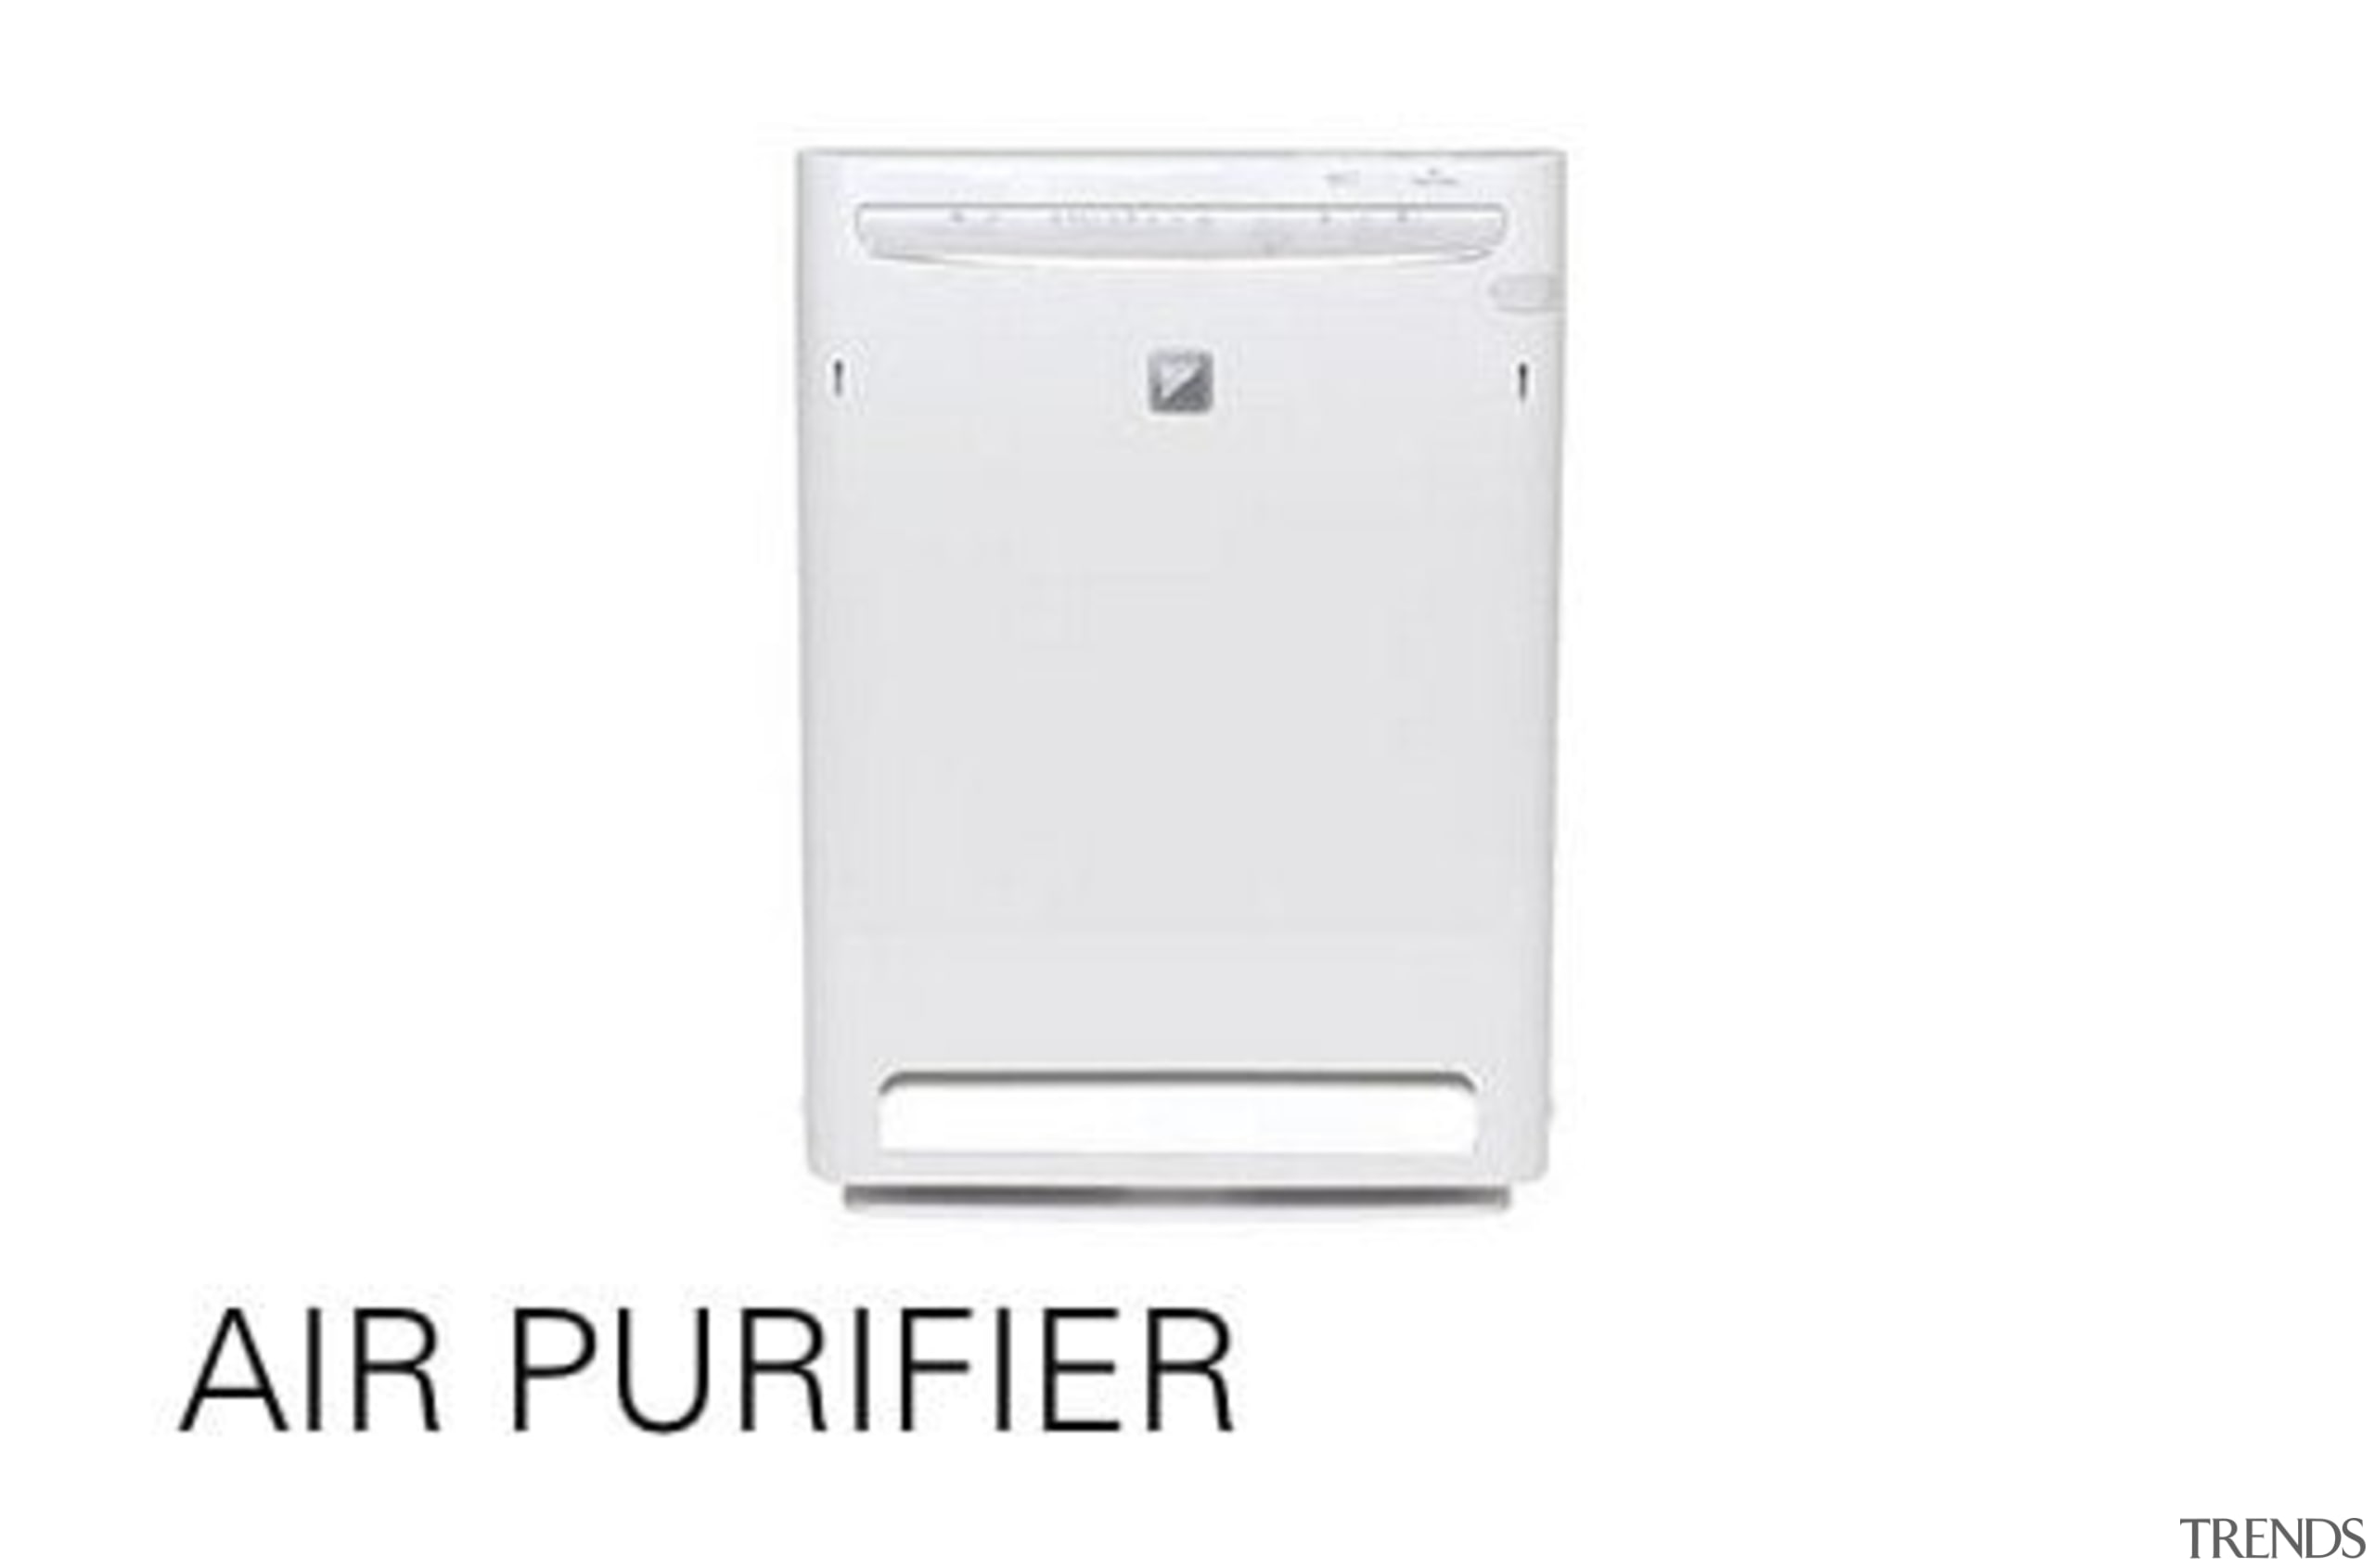 Air Purifiers 2 - product   white product, white